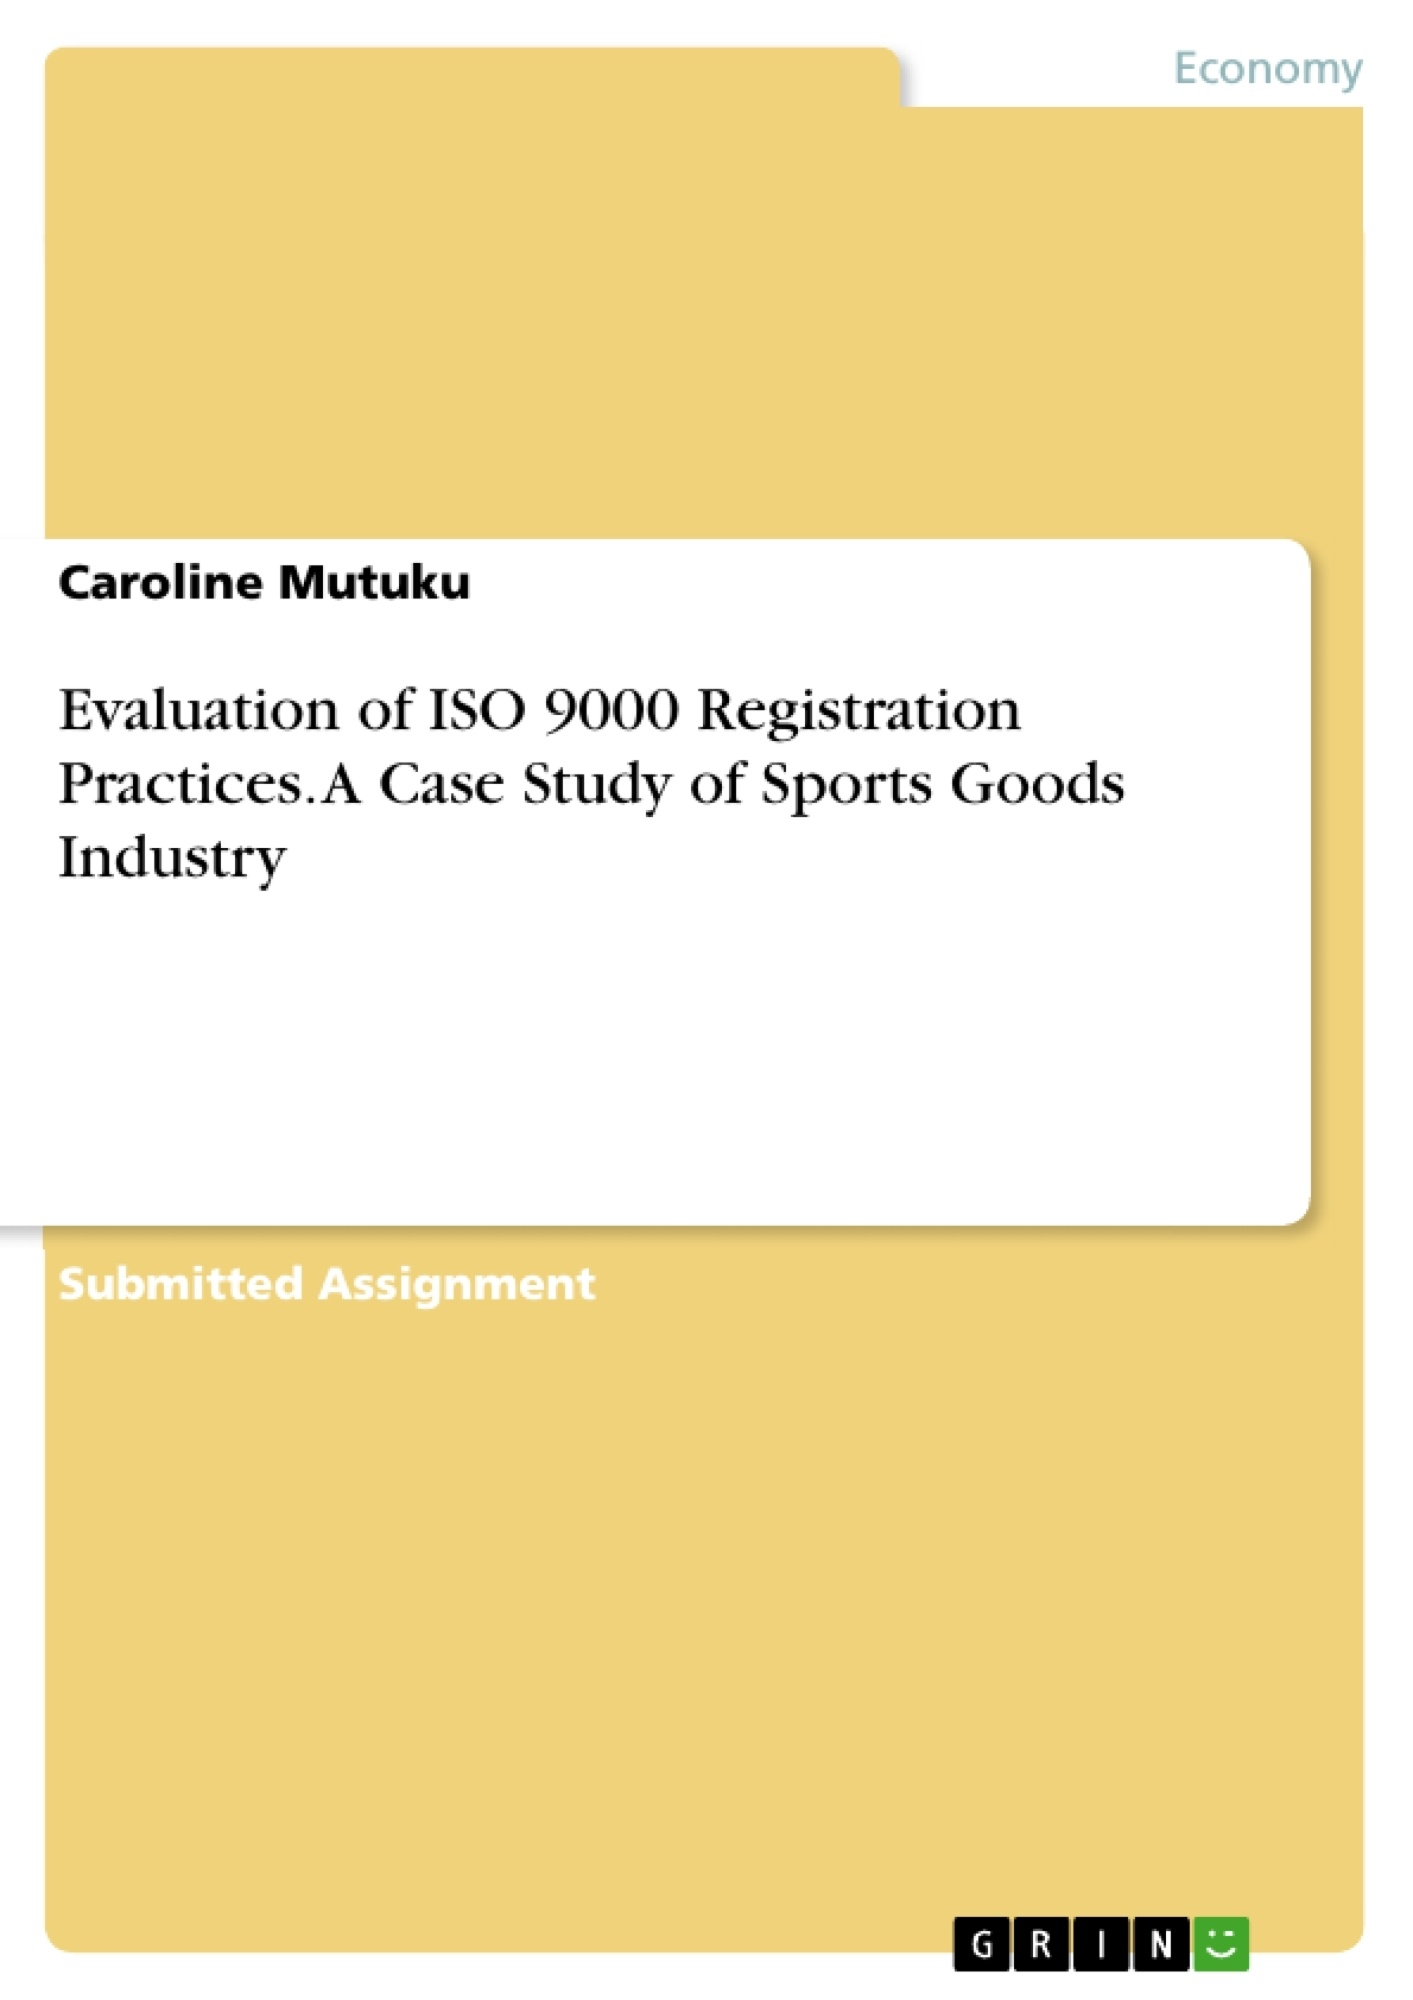 Title: Evaluation of ISO 9000 Registration Practices. A Case Study of Sports Goods Industry